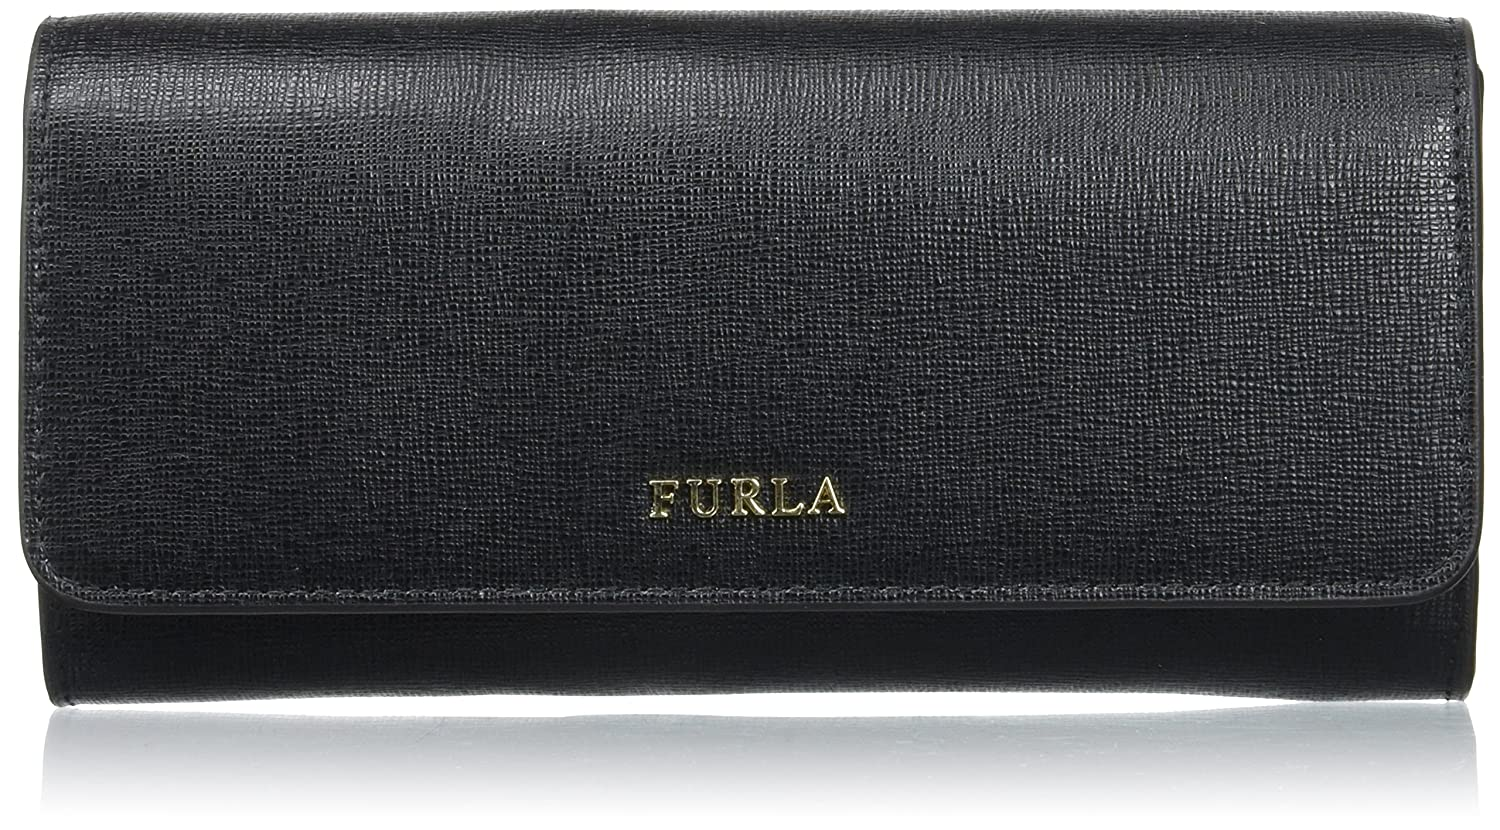 FURLA Women's Babylon Wallet FURLA Babylon Women's Wallet Black (Onyx) 871069